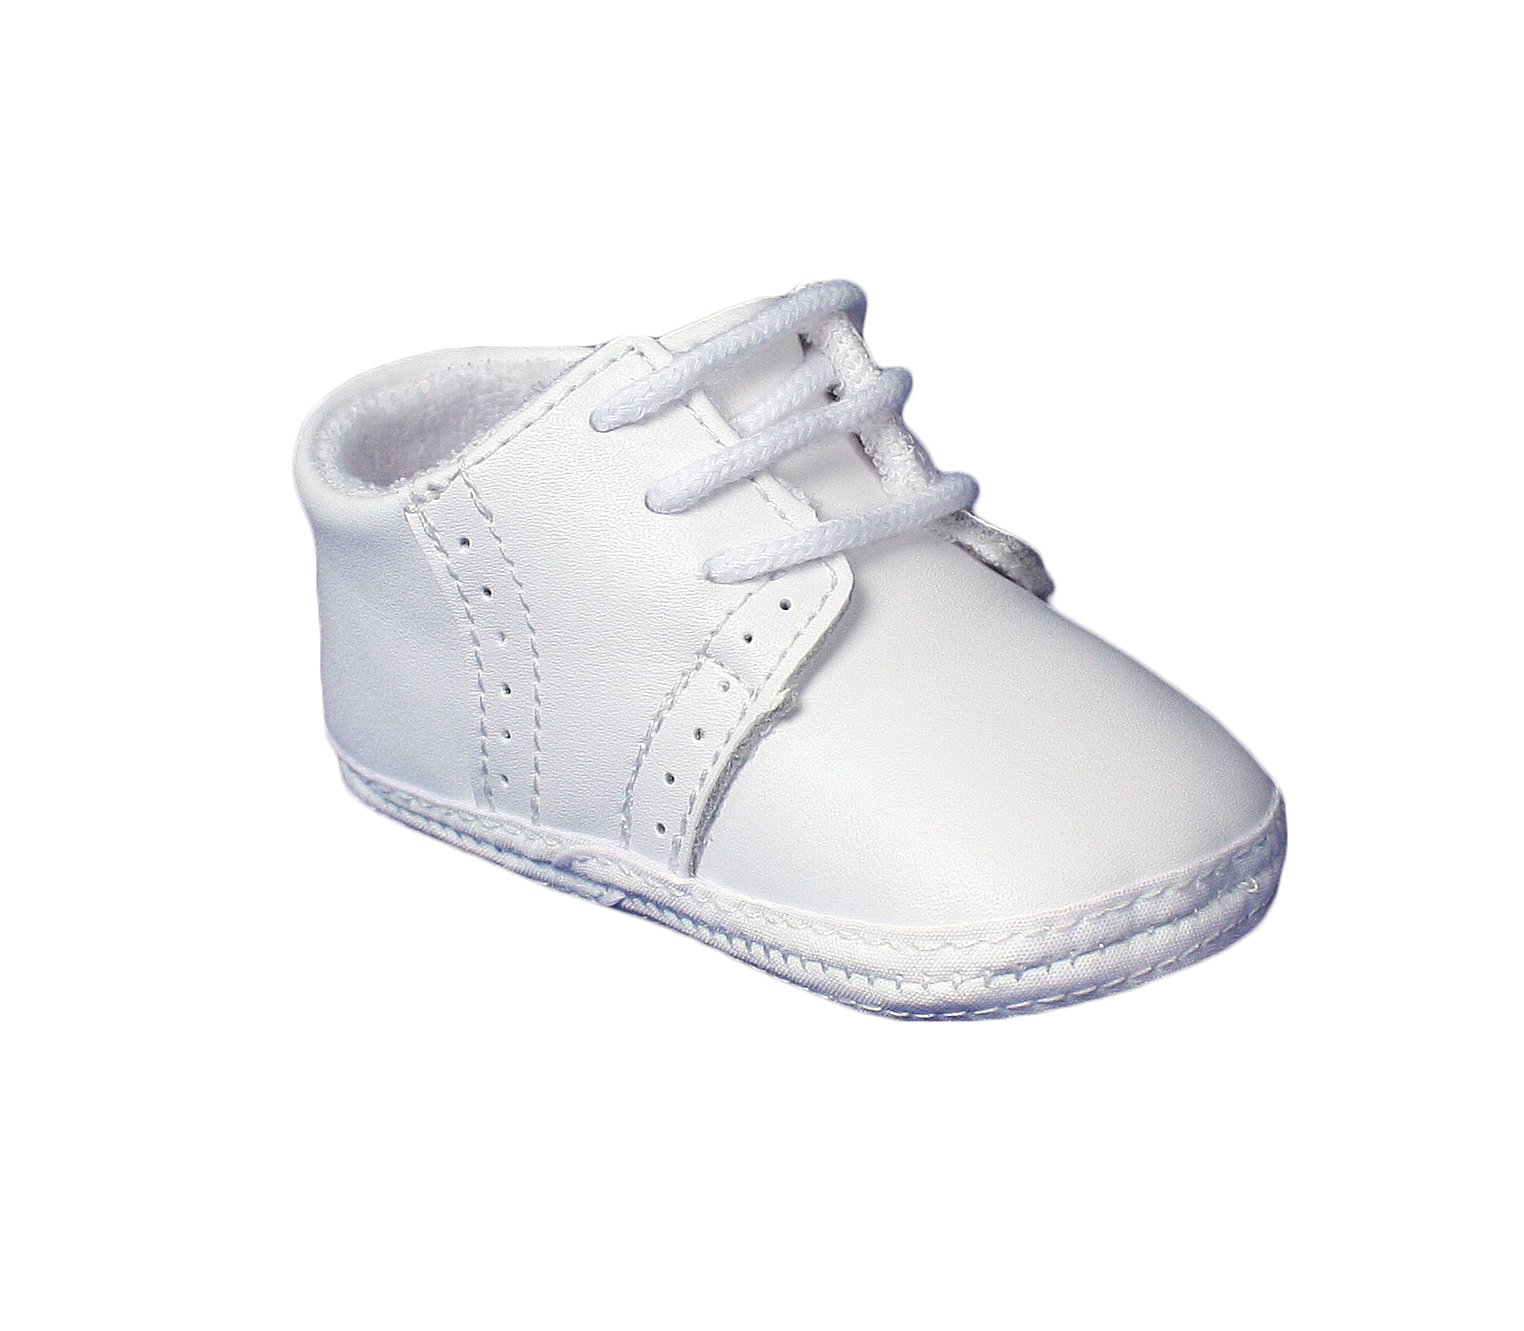 Little Things Mean A Lot Baby Boys All White Genuine Leather Saddle Oxford Crib Shoe with Perforations - 2